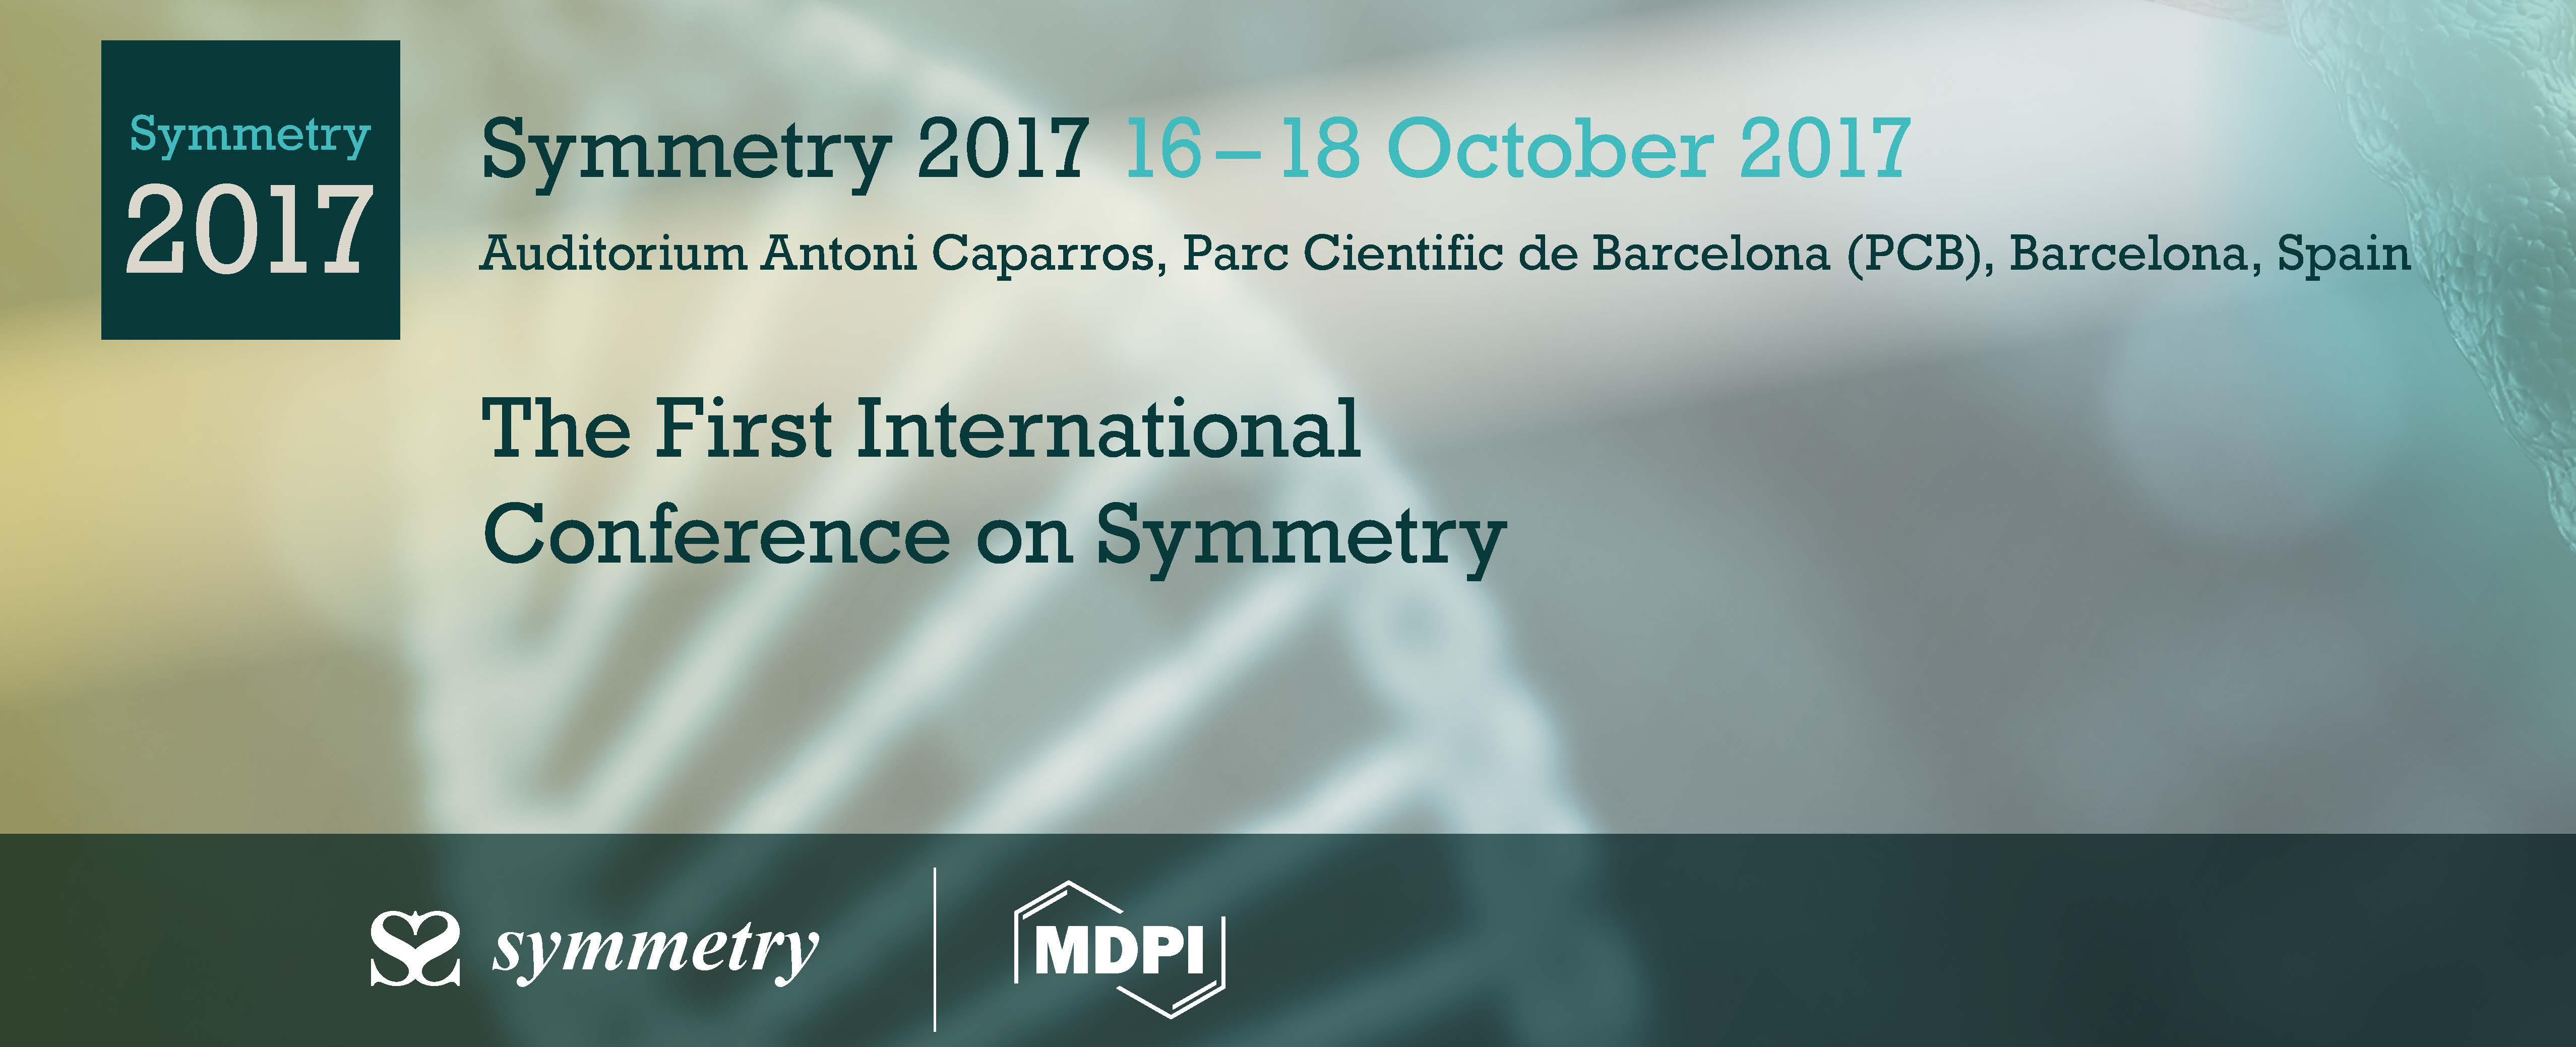 SeRMN contribution to Symmetry 2017 Conference